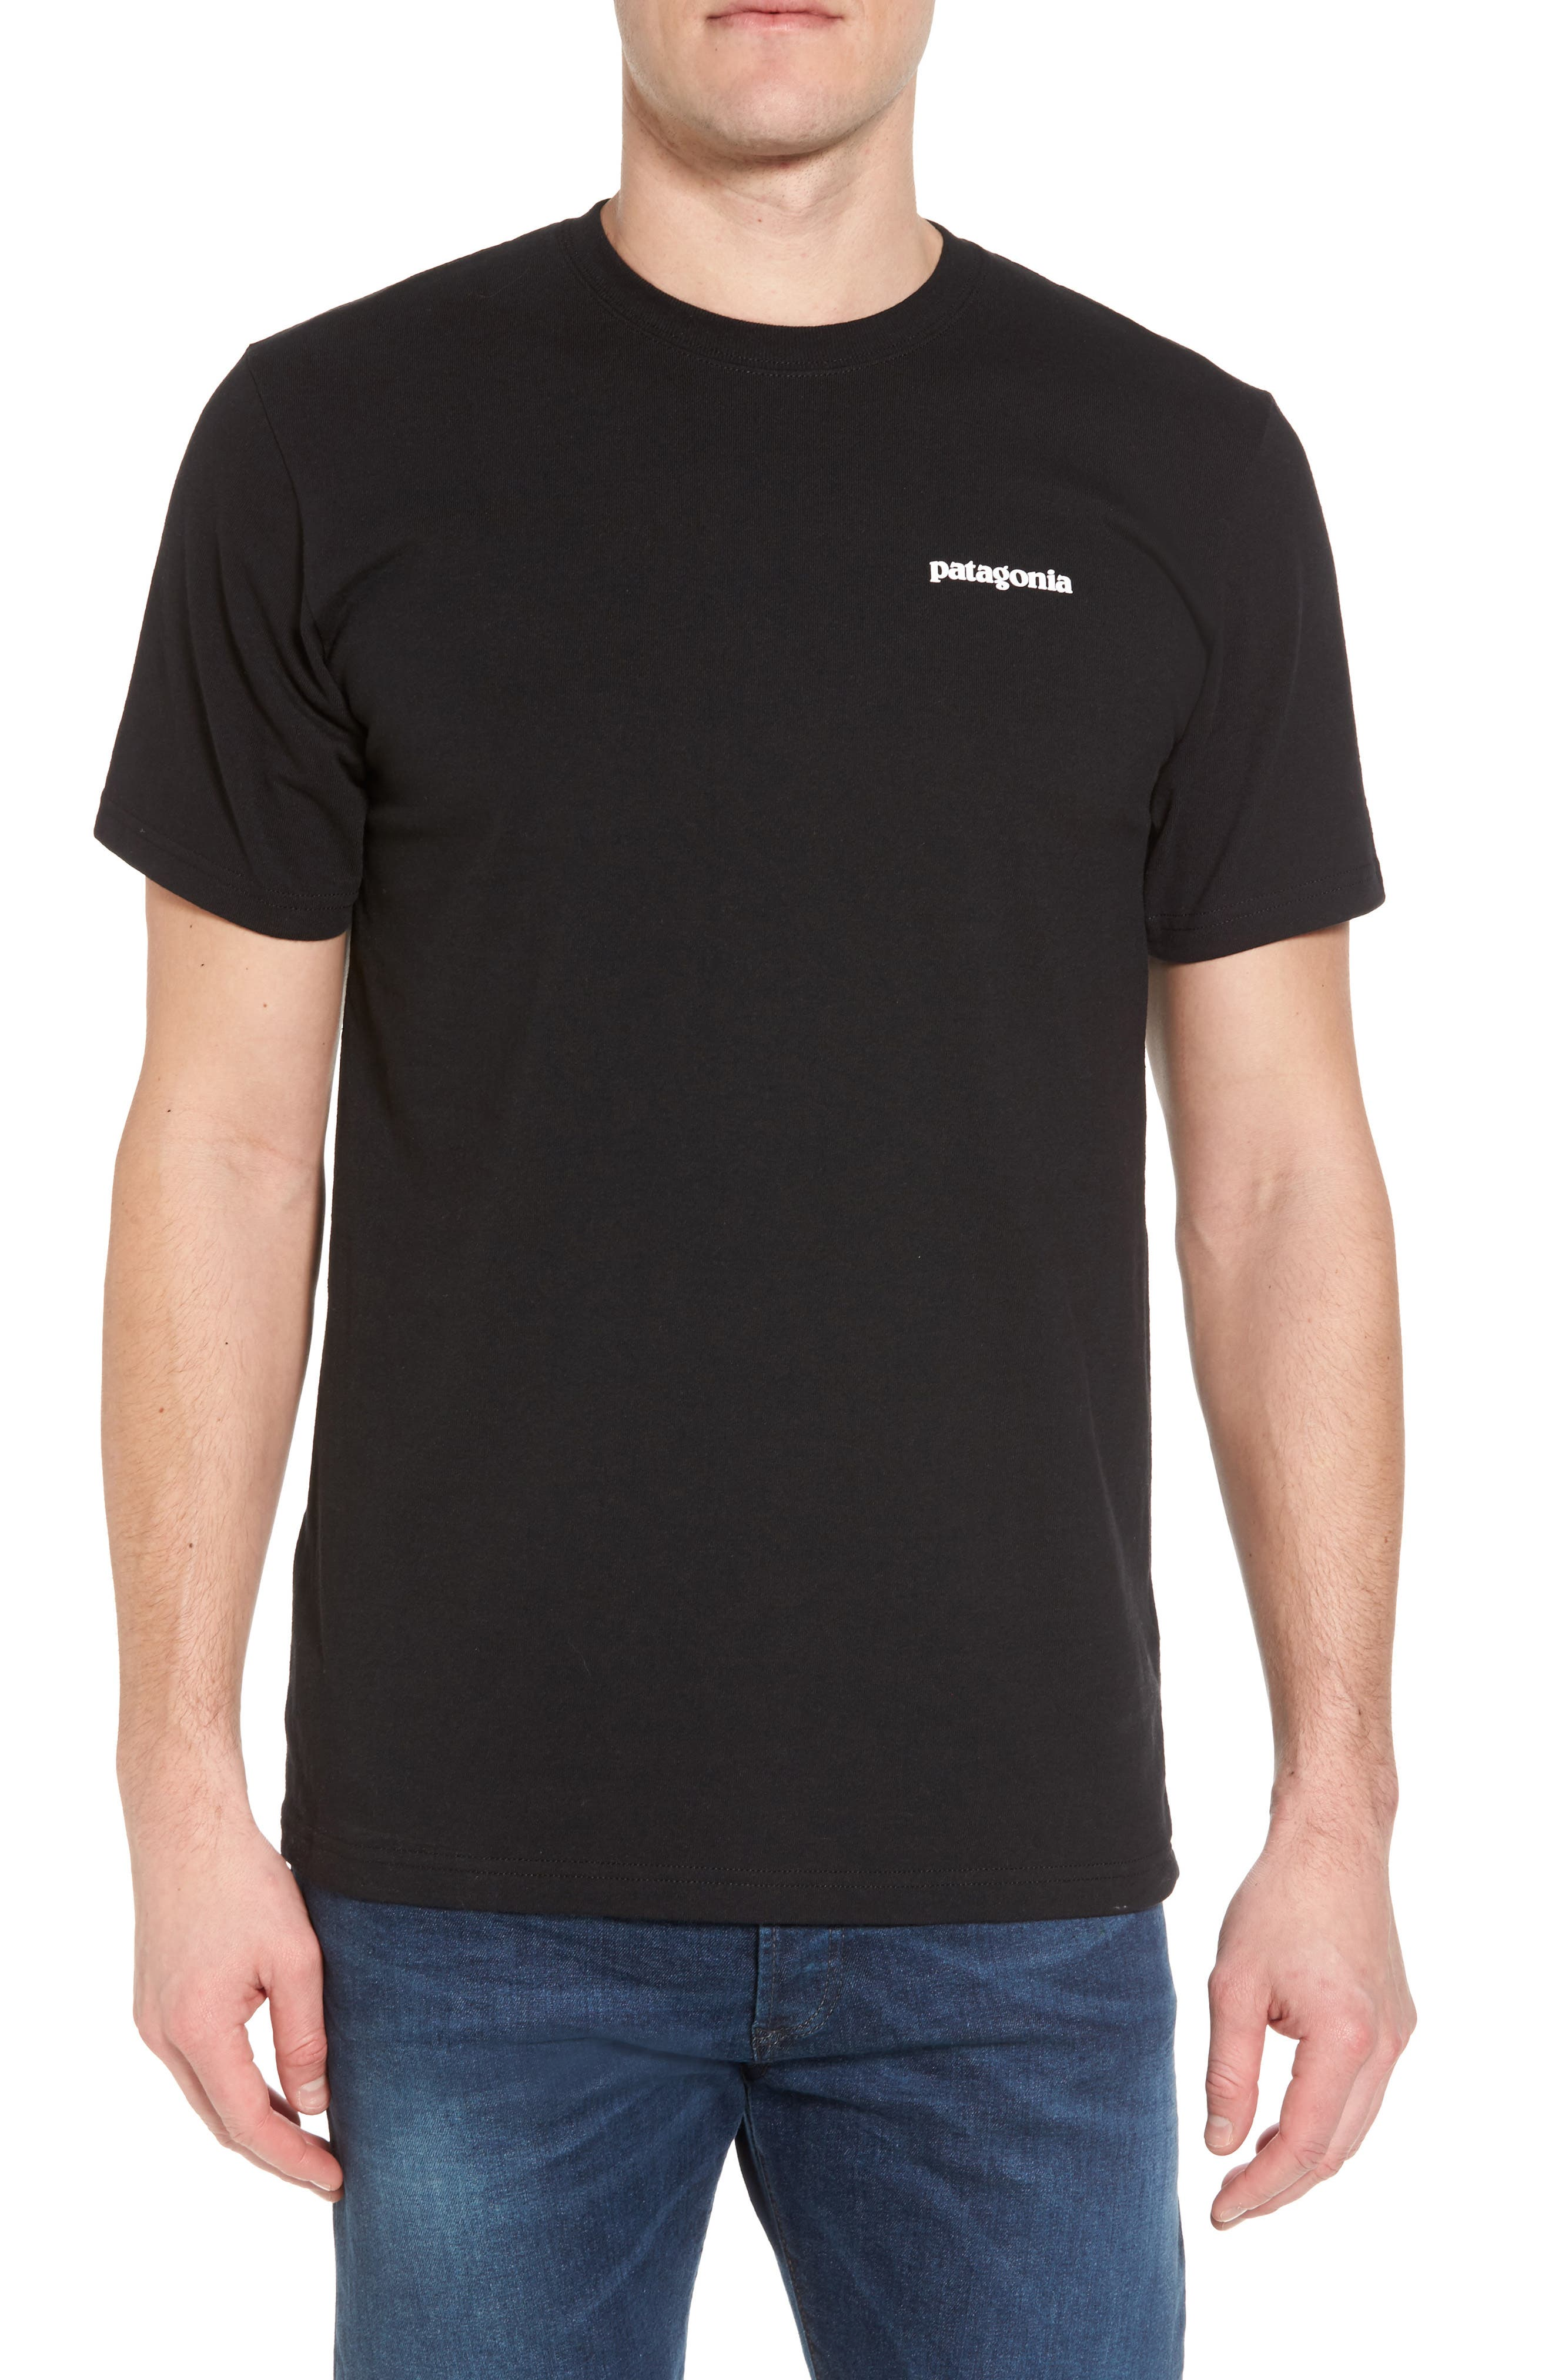 Responsibili-Tee T-Shirt,                         Main,                         color, BLACK